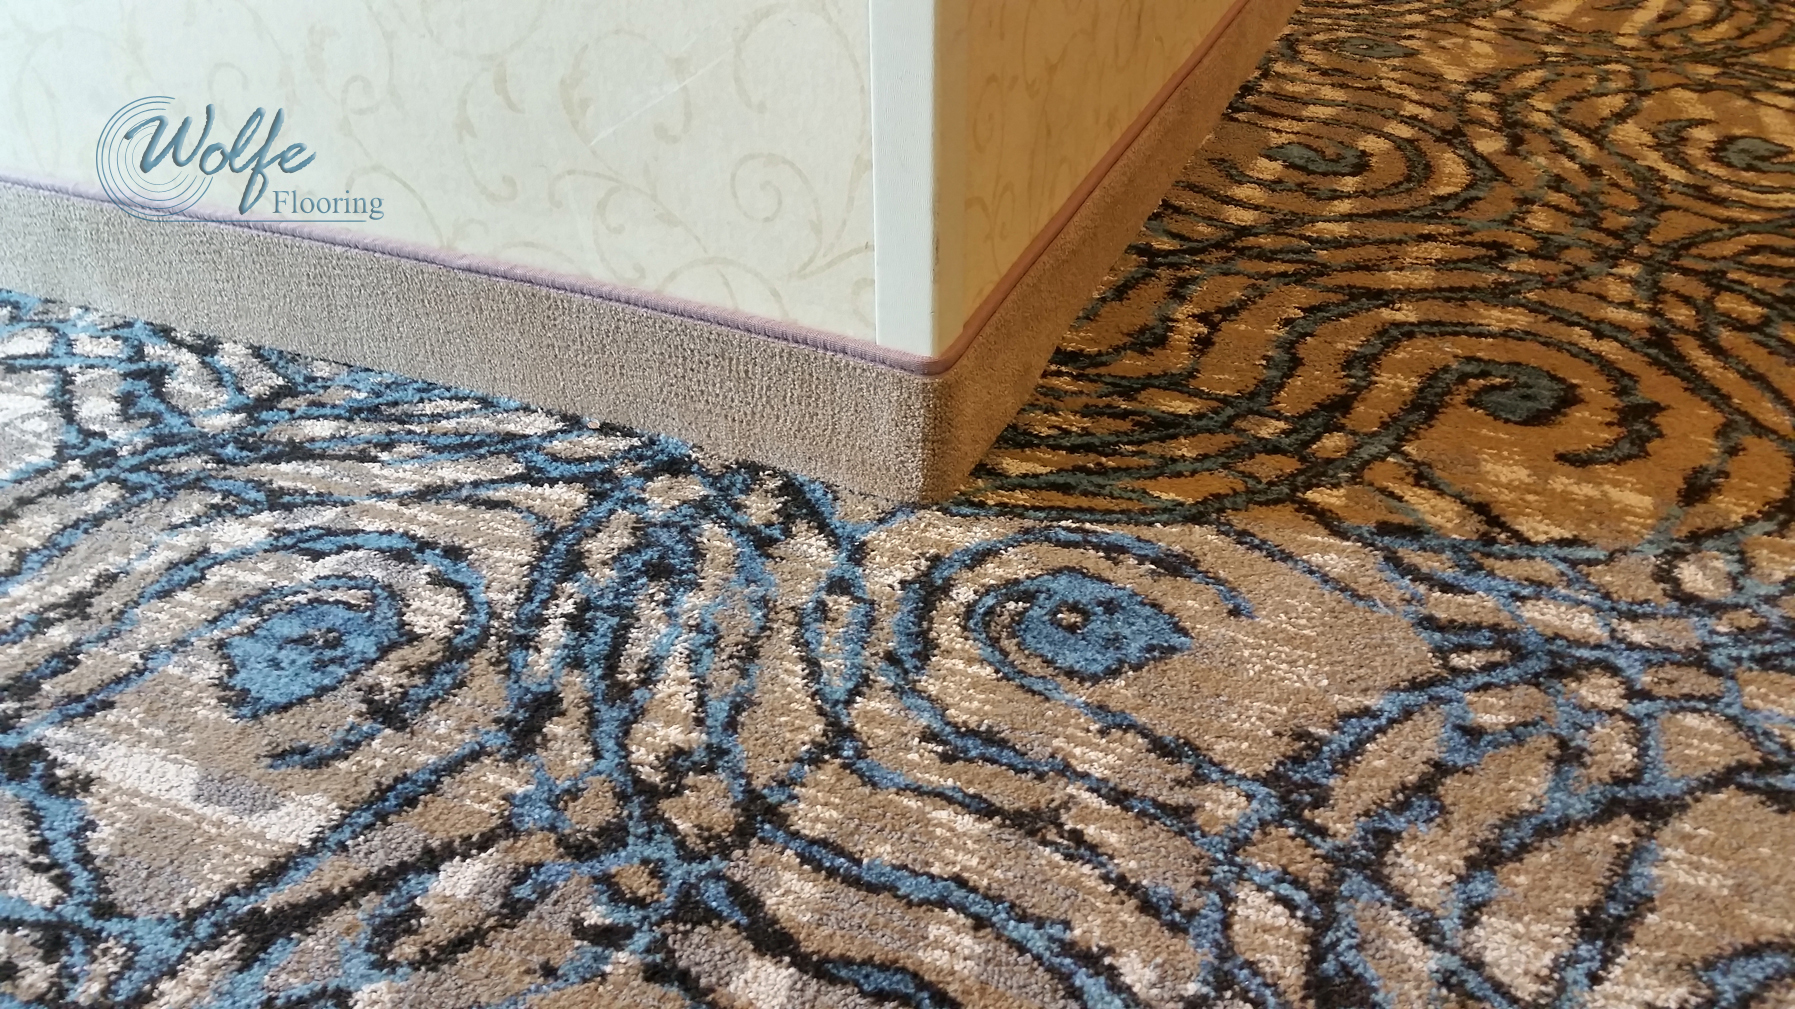 Collection 2 Wolfe Flooring Inc